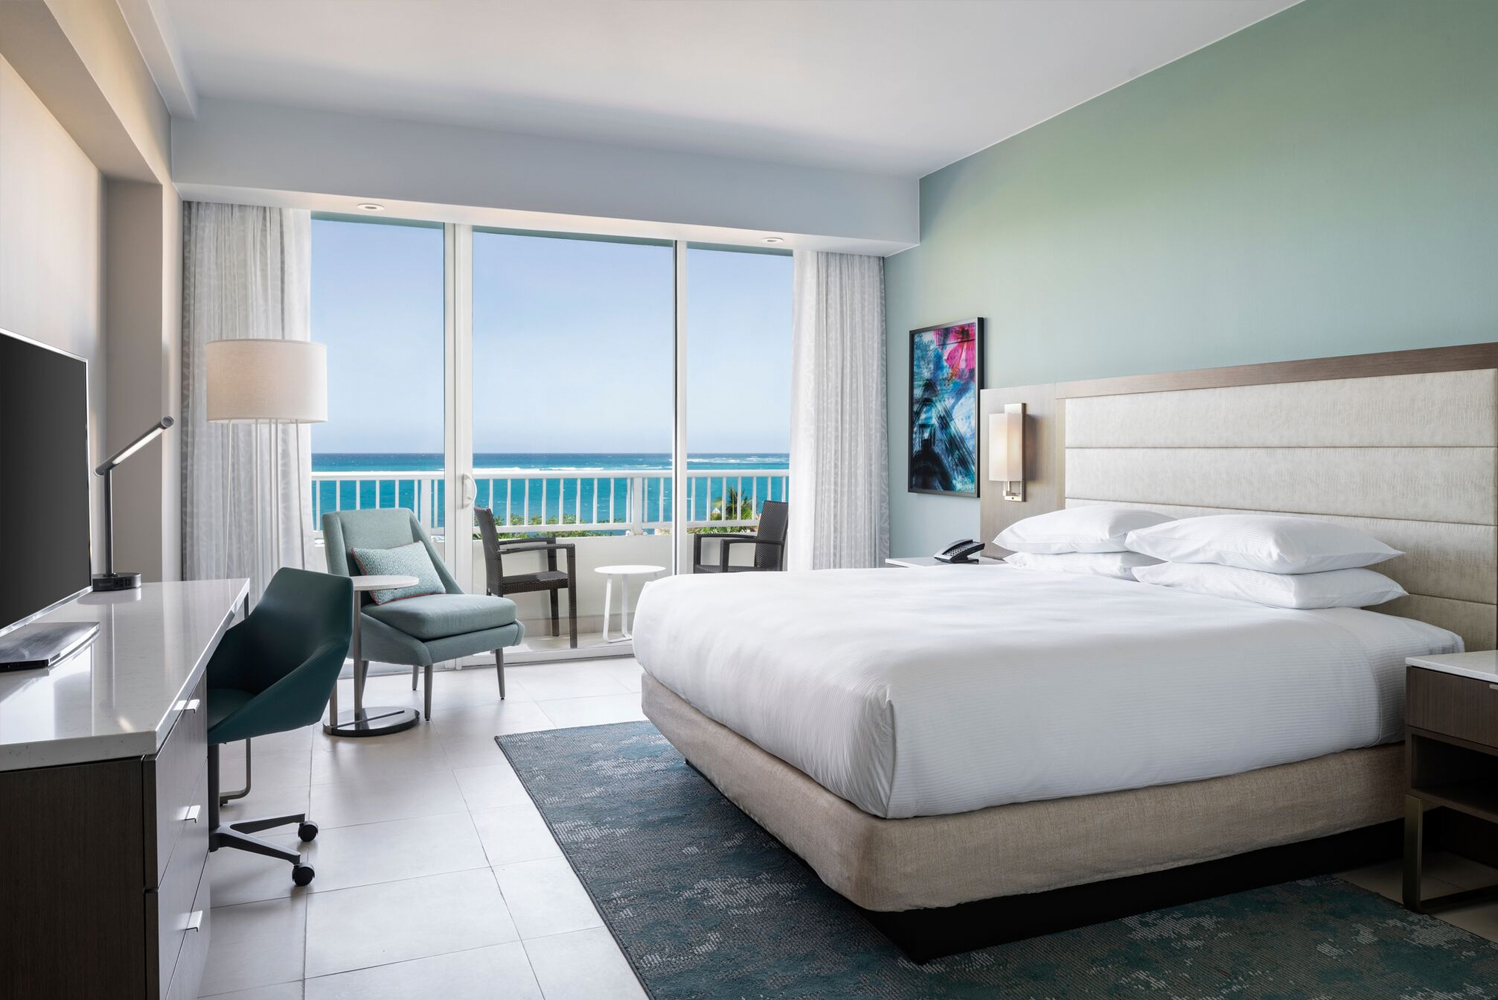 San Juan, Puerto Rico's Caribe Hilton completed a more than $150 million restoration following a 15-month closure.